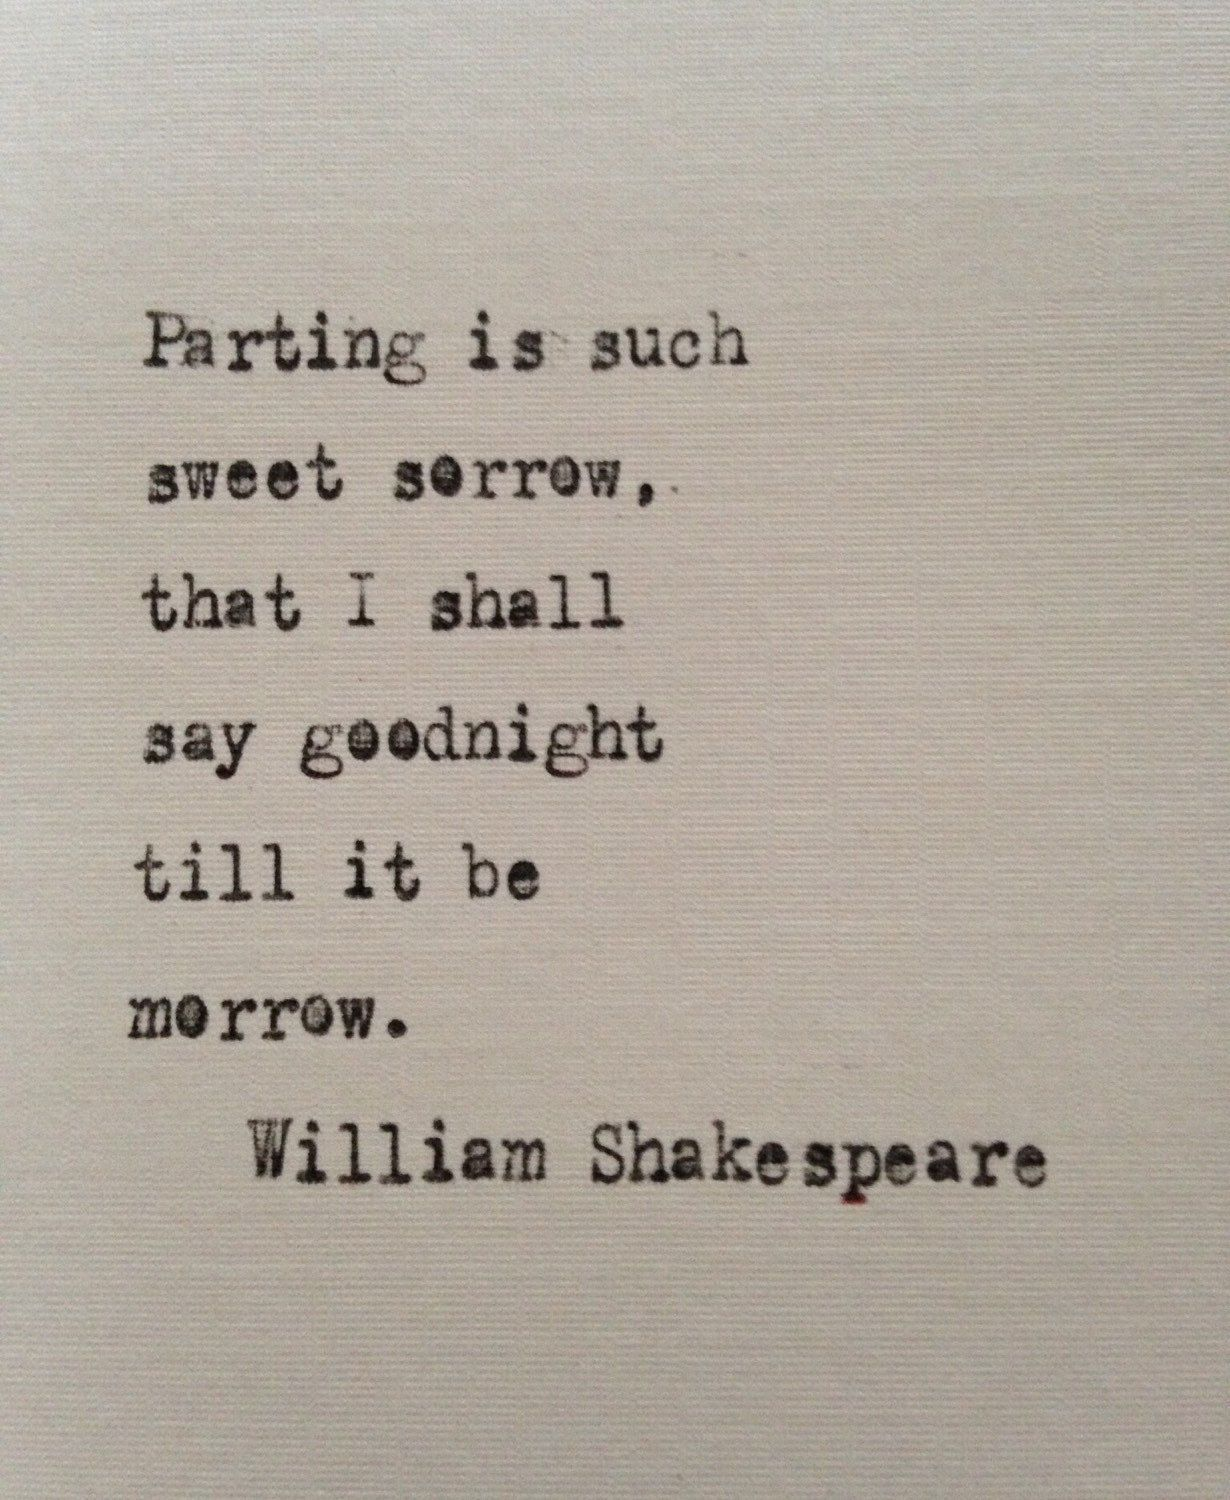 Shakespeare Romeo And Juliet Quotes Adorable William Shakespeare Love Quote Romeo And Juliet Hand Typed On